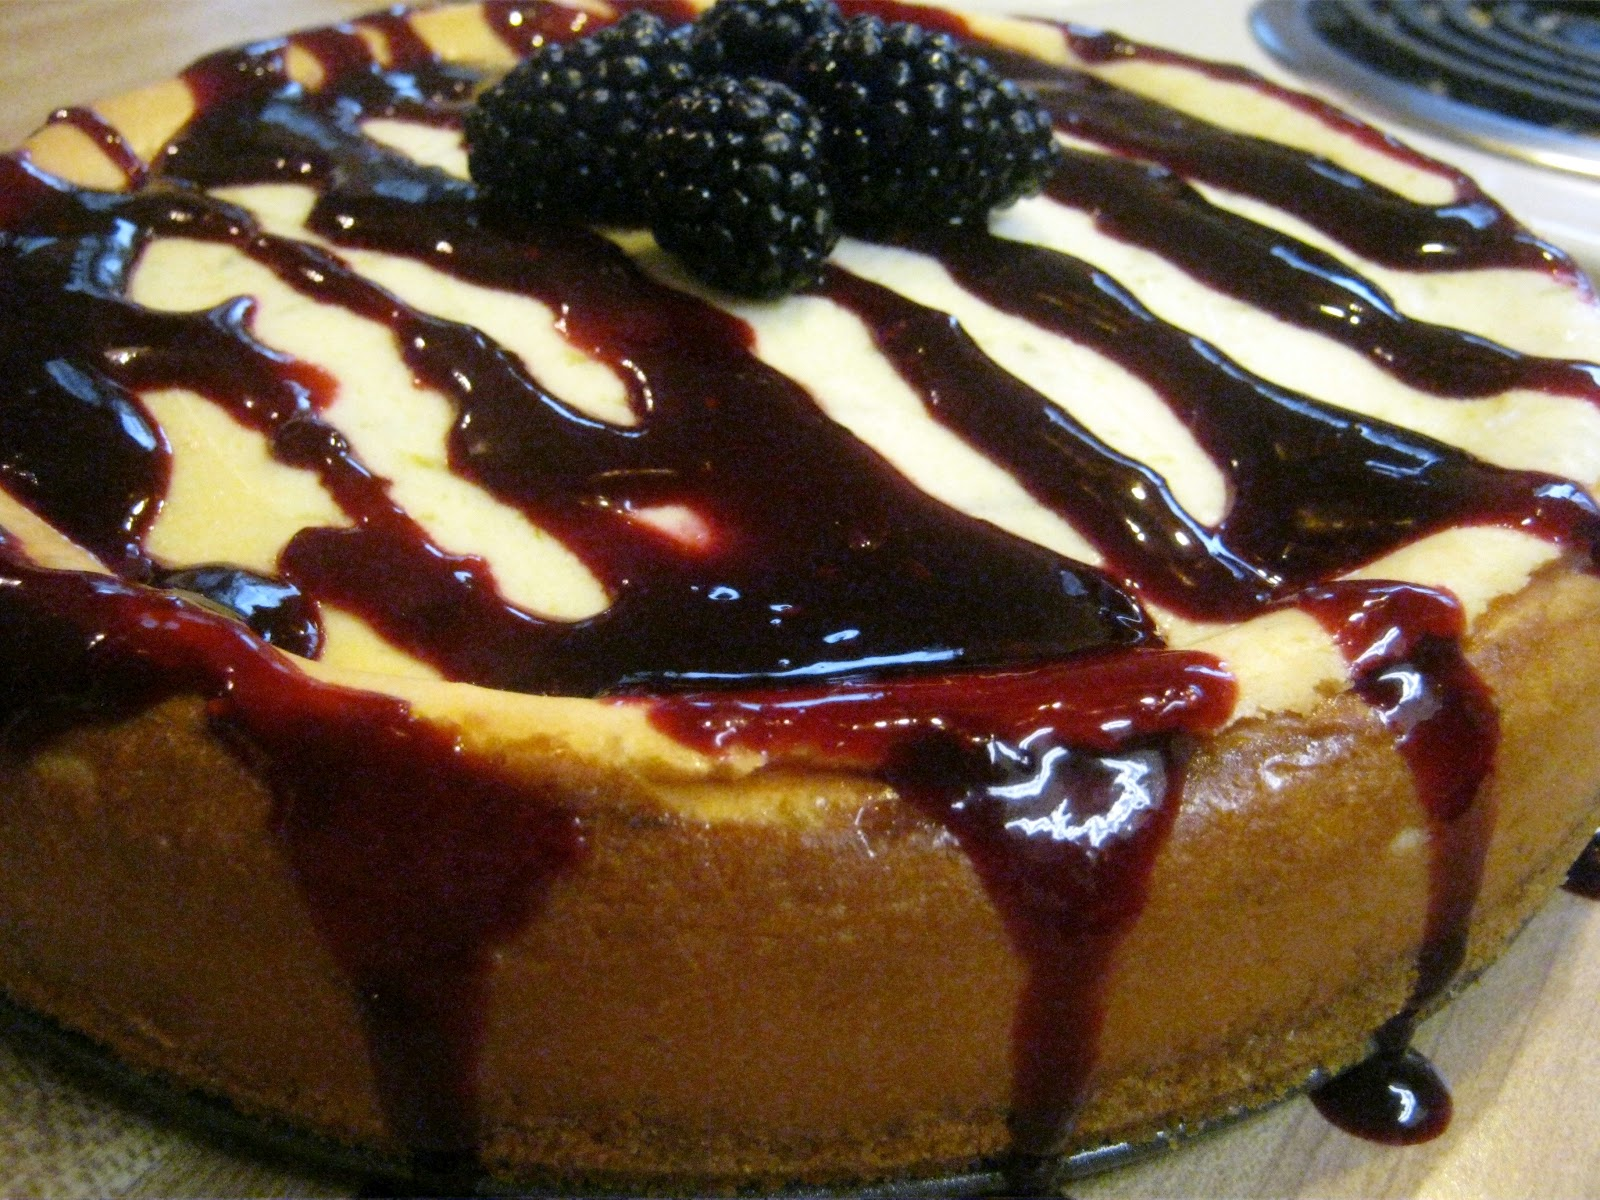 ... ://annies-eats.com/2011/03/09/lime-cheesecake-with-blackberry-sauce